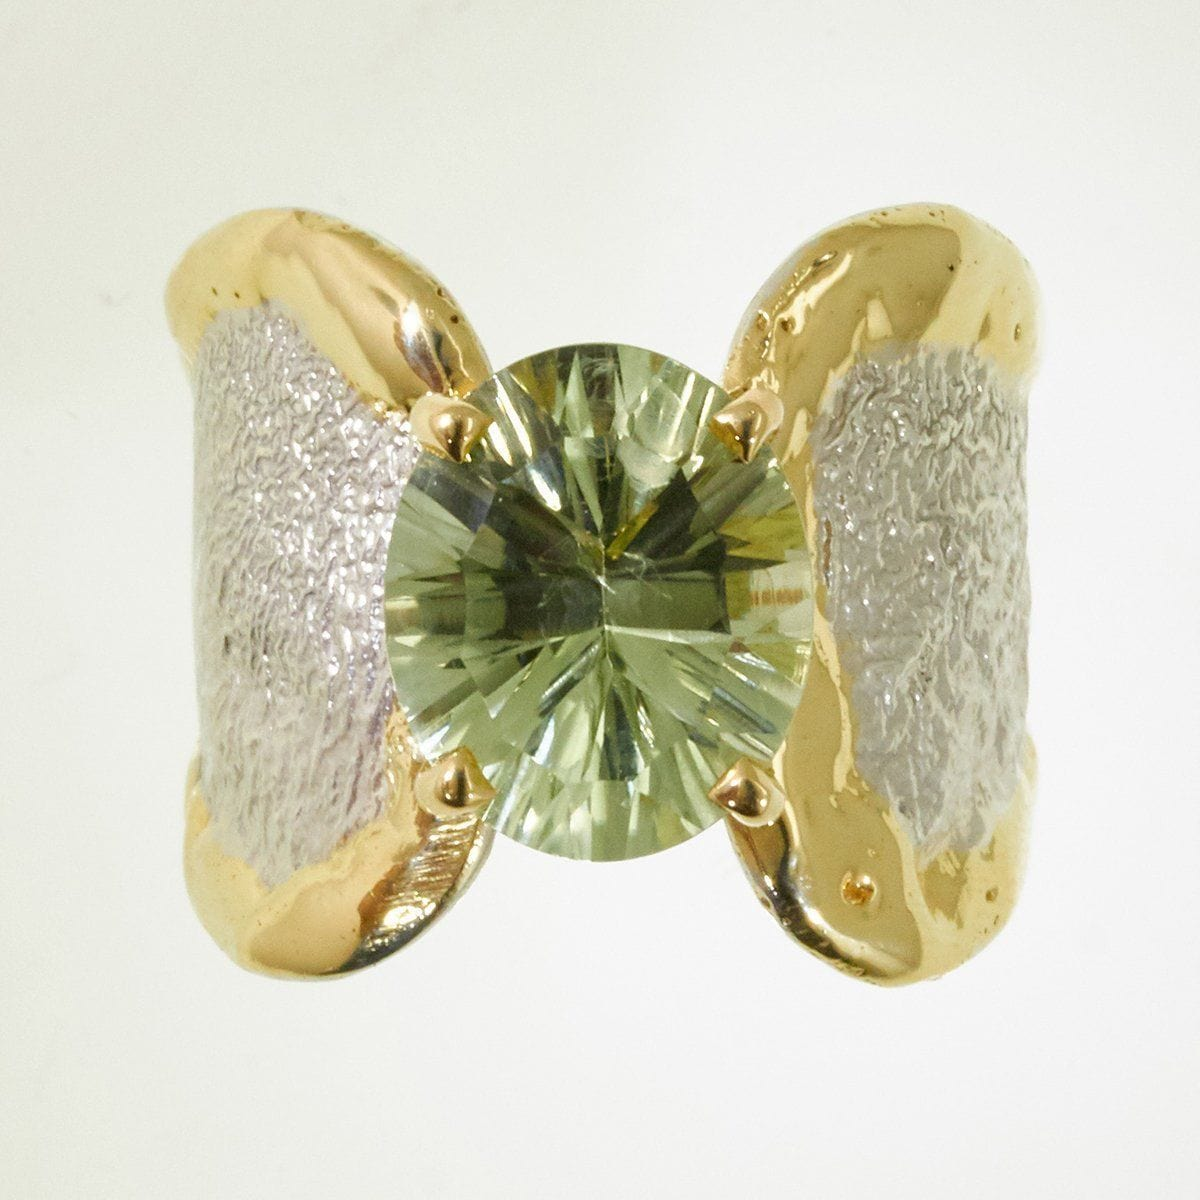 14K Gold & Crystalline Silver Prasiolite Ring - 32851-Fusion Designs-Renee Taylor Gallery